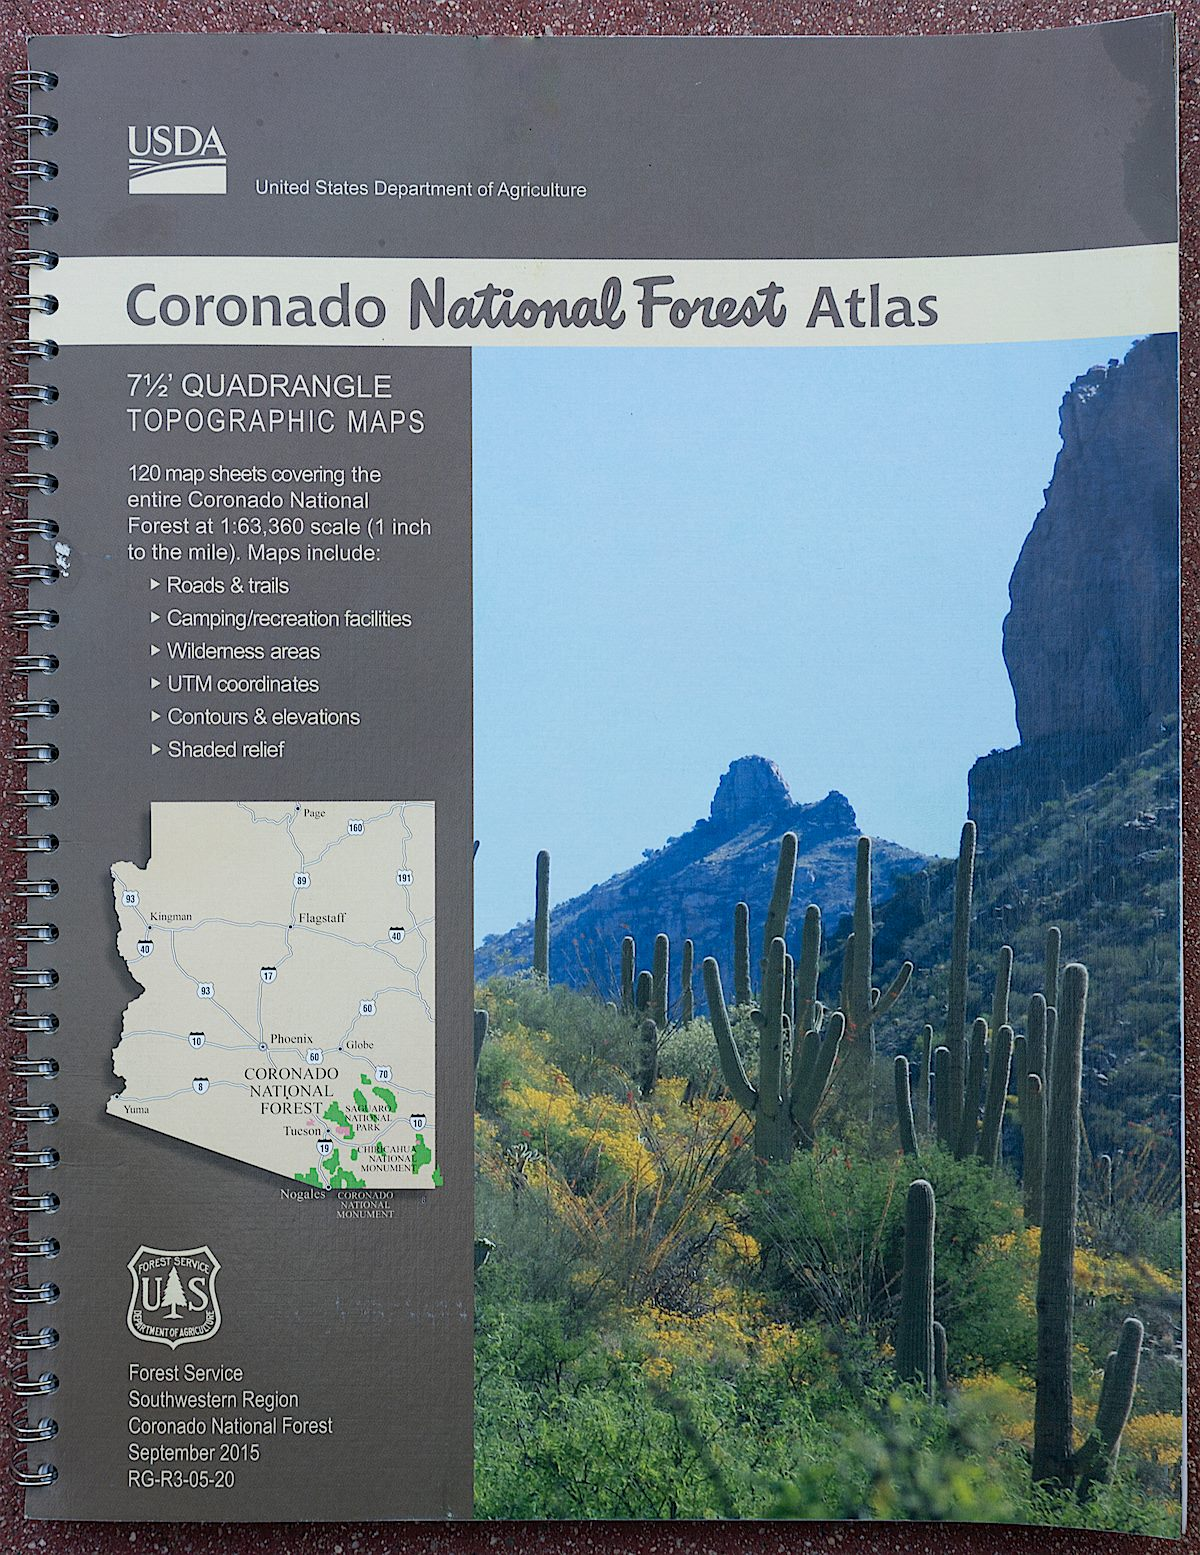 Coronado National Forest Atlas - spiral bound topo maps for the Coronado National Forest including the Santa Catalina Mountains. August 2016.